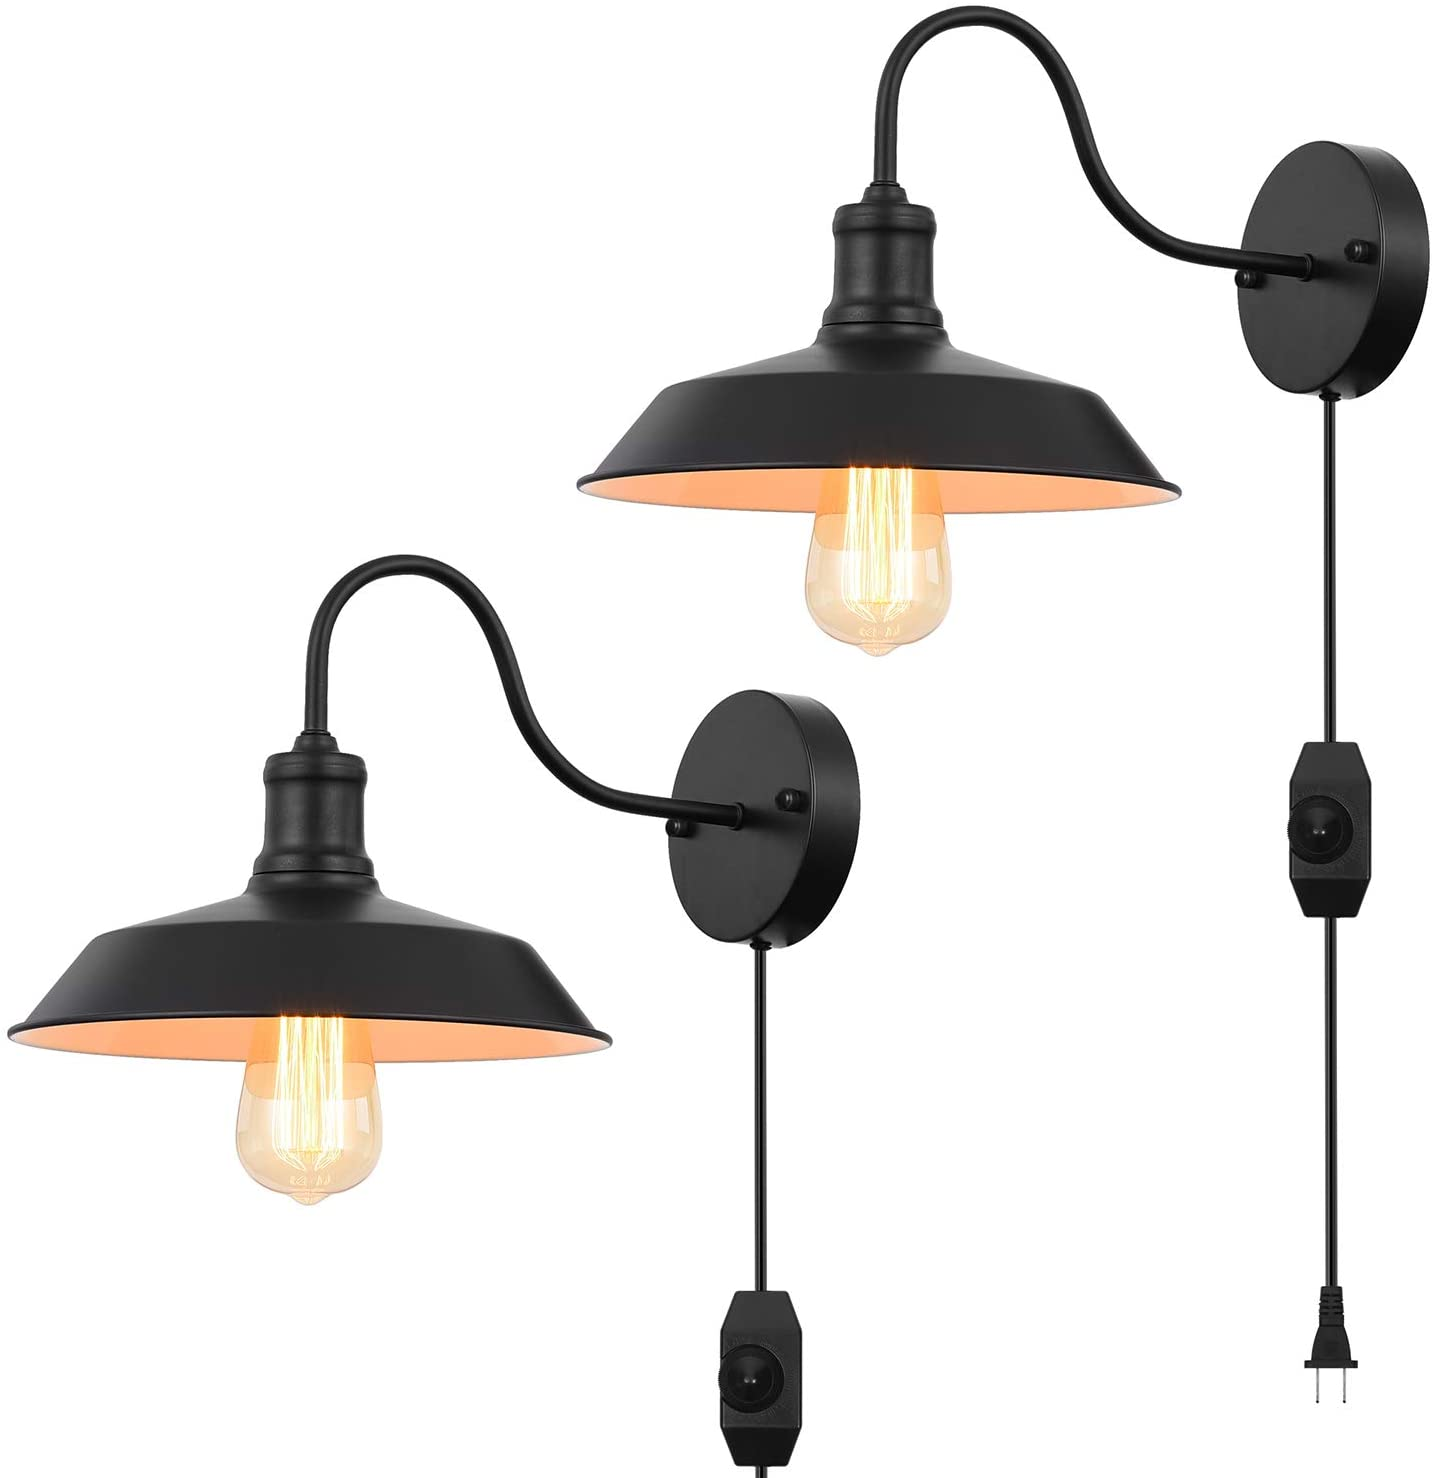 Black Gooseneck Plug in Wall Light Fixture with 5.9 Ft Cord and Dimmable Switch Wall Lamp Industrial Vintage Farmhouse Wall Sconce Lighting for Bedroom Nightstand Lighting Set of 2 Pack